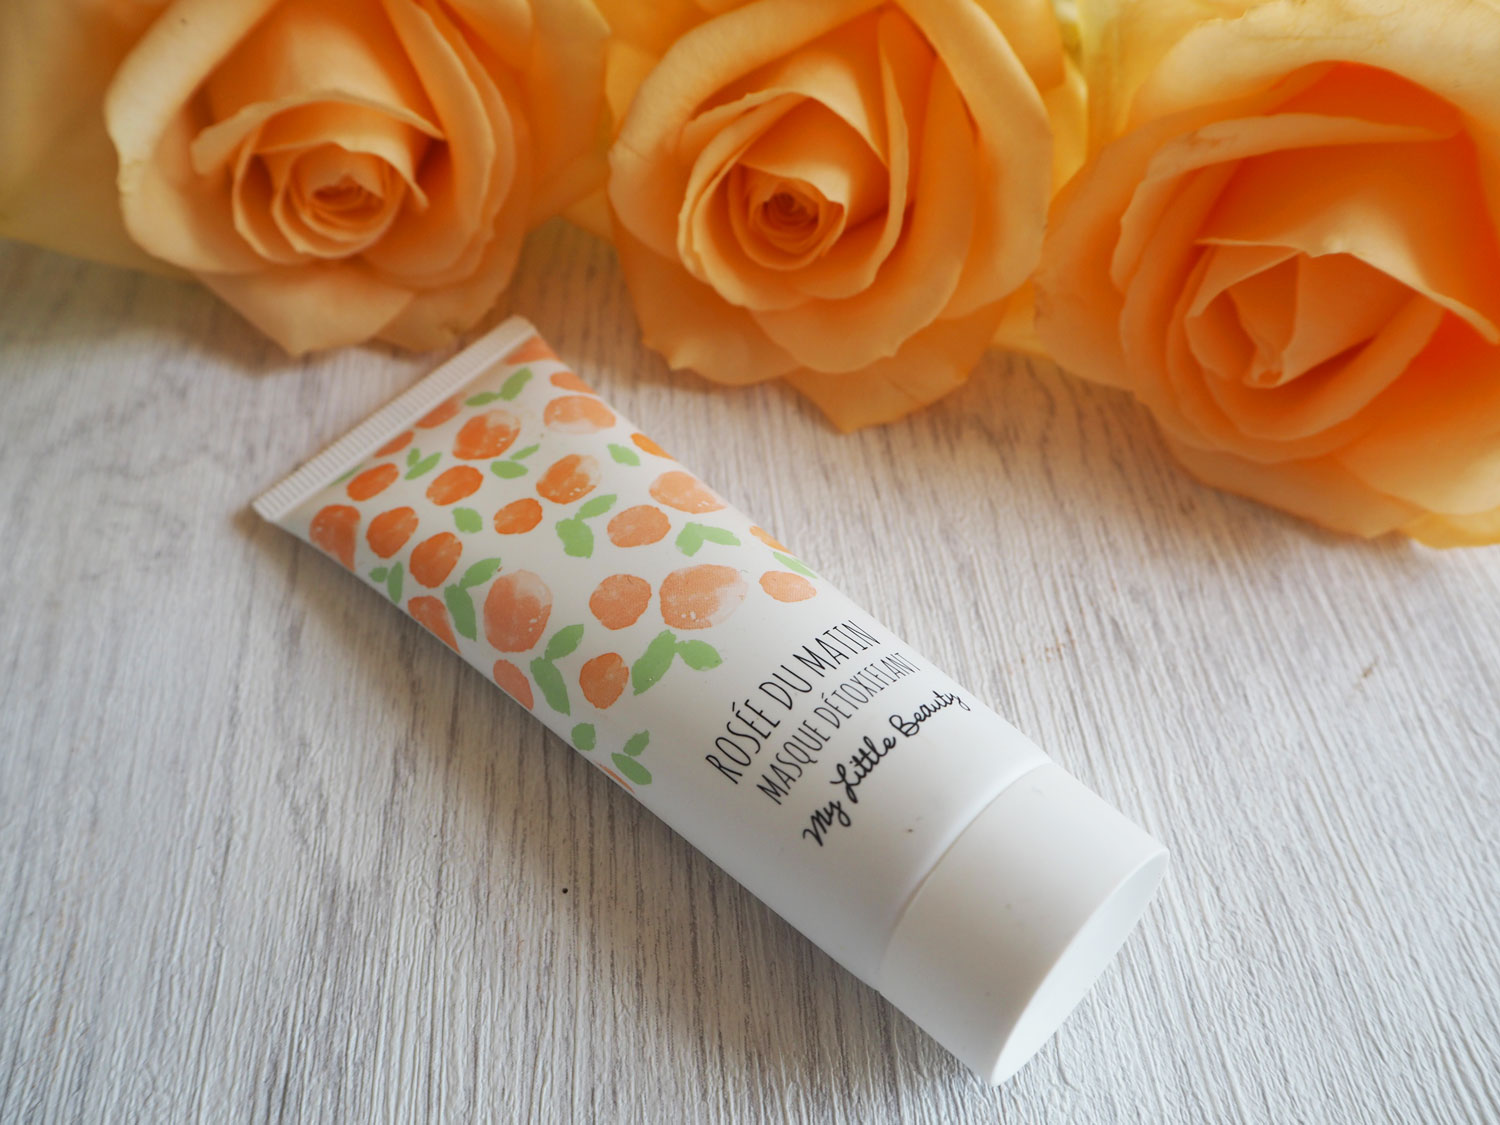 my-little-beauty-rosee-du-matin--face-mask-review